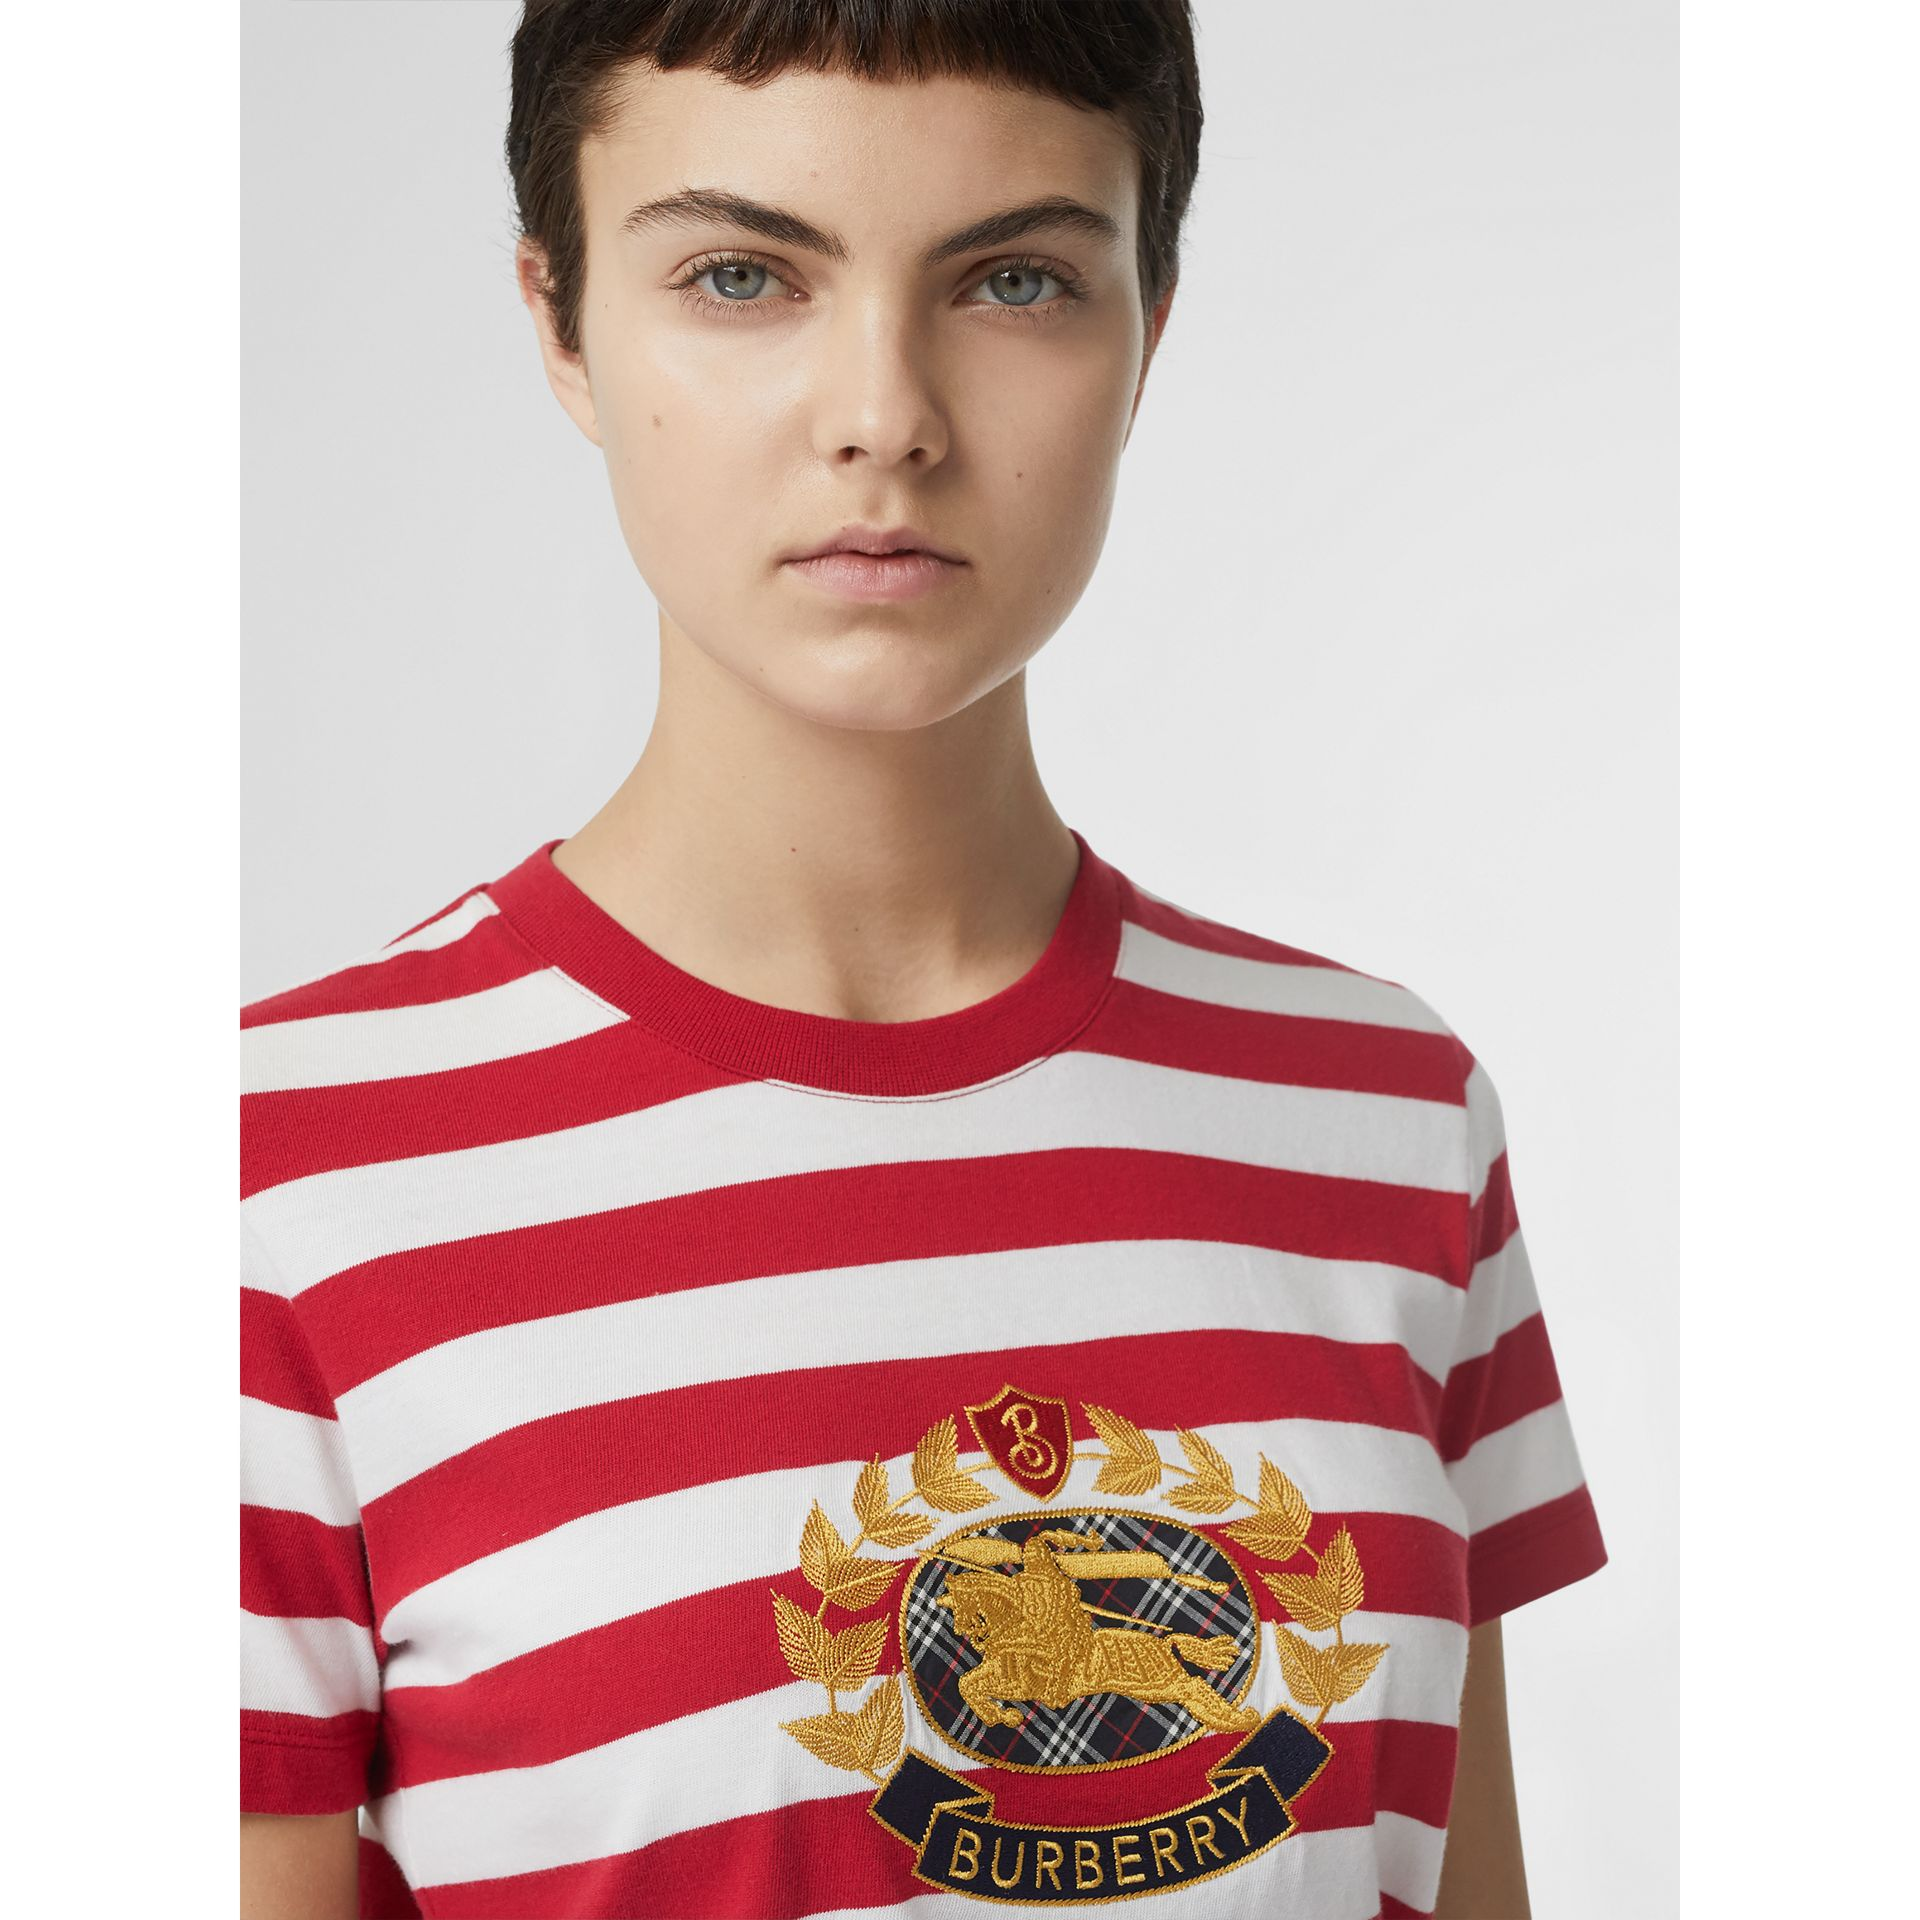 Crest Appliqué Striped Cotton T-shirt in Cadmium Red - Women | Burberry Australia - gallery image 1